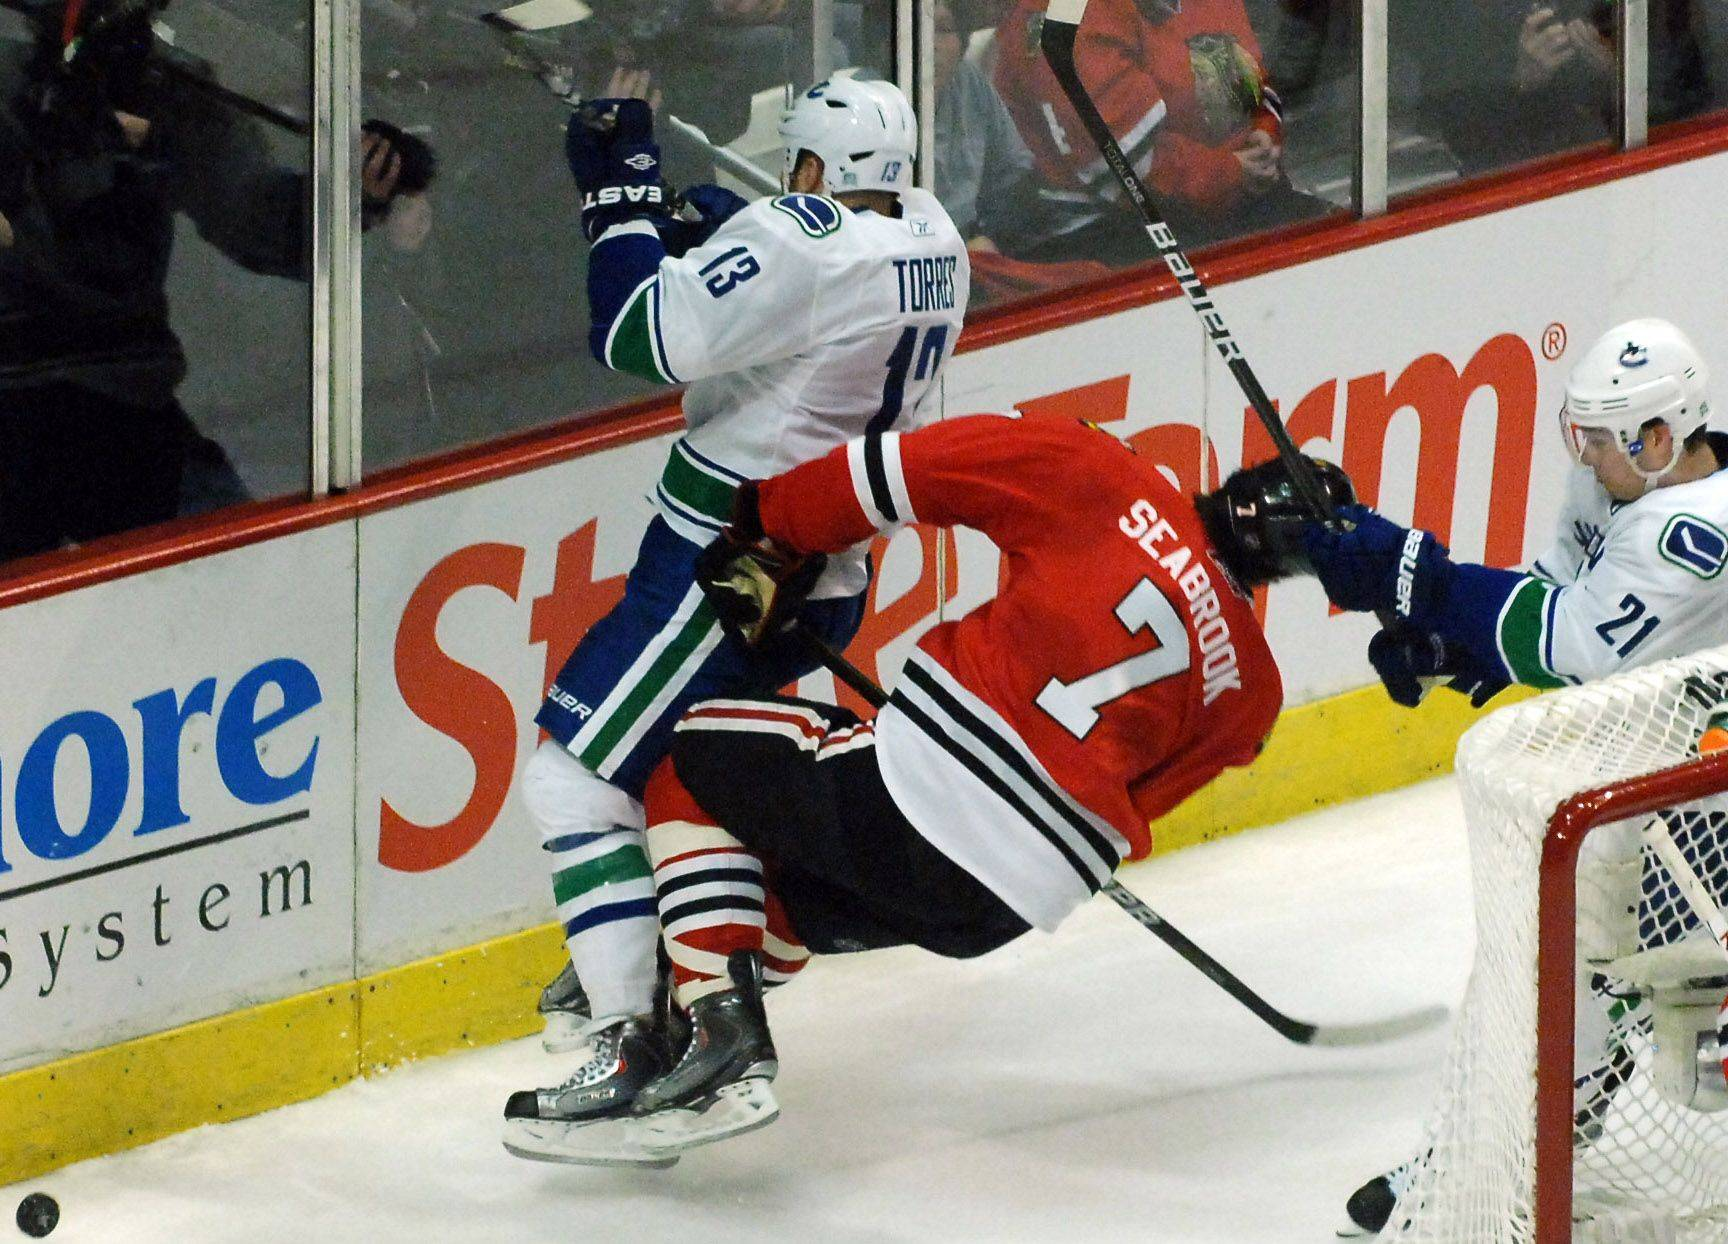 Canucks left wing Raffi Torres received a two-minute penalty for this hit on Blackhawks defenseman Brent Seabrook in the second period Sunday night.